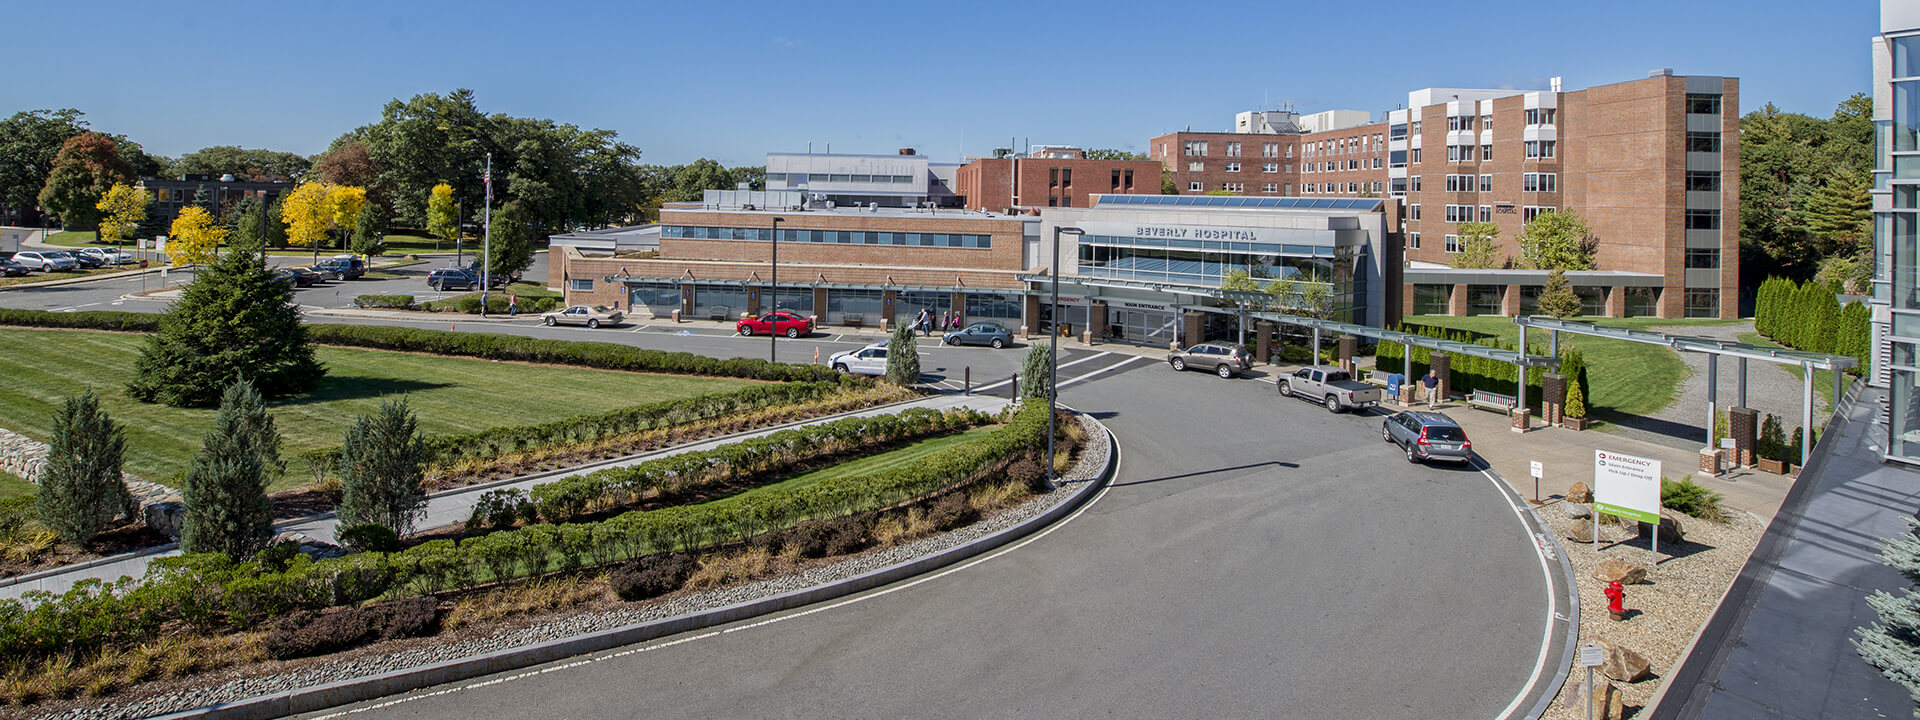 beverly main hospital campus